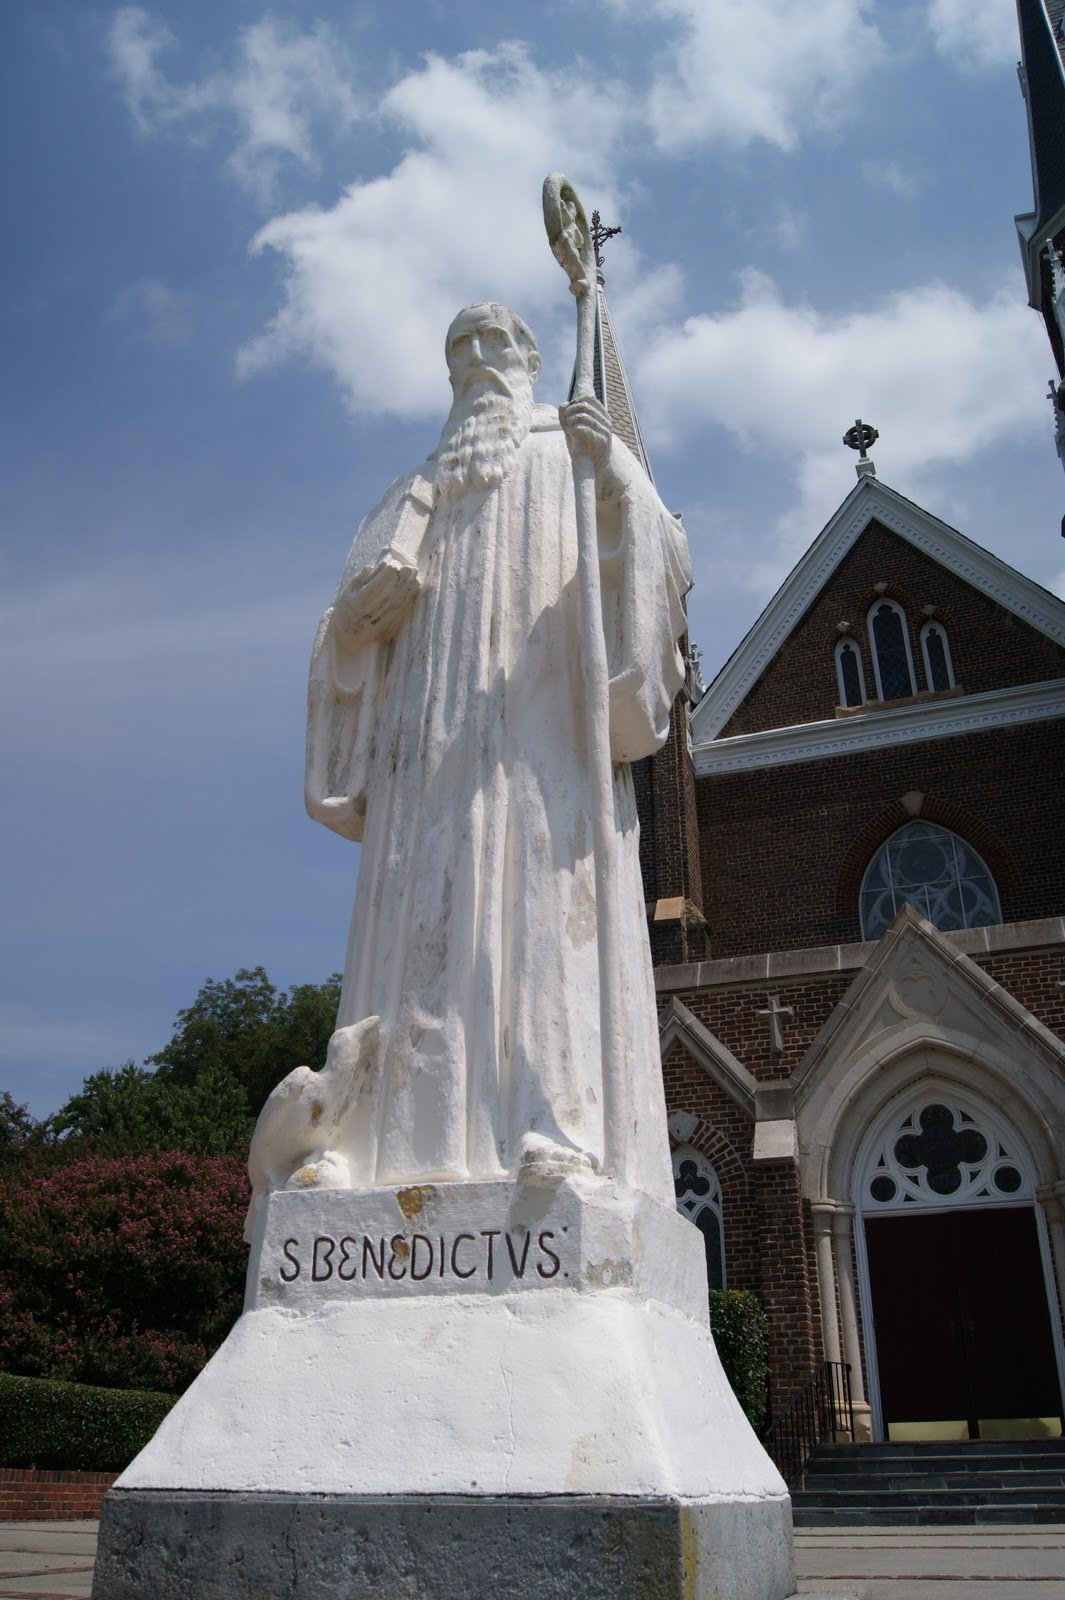 Statue of St. Benedict, founder of the Benedictine order, at the entrance of the Basilica.